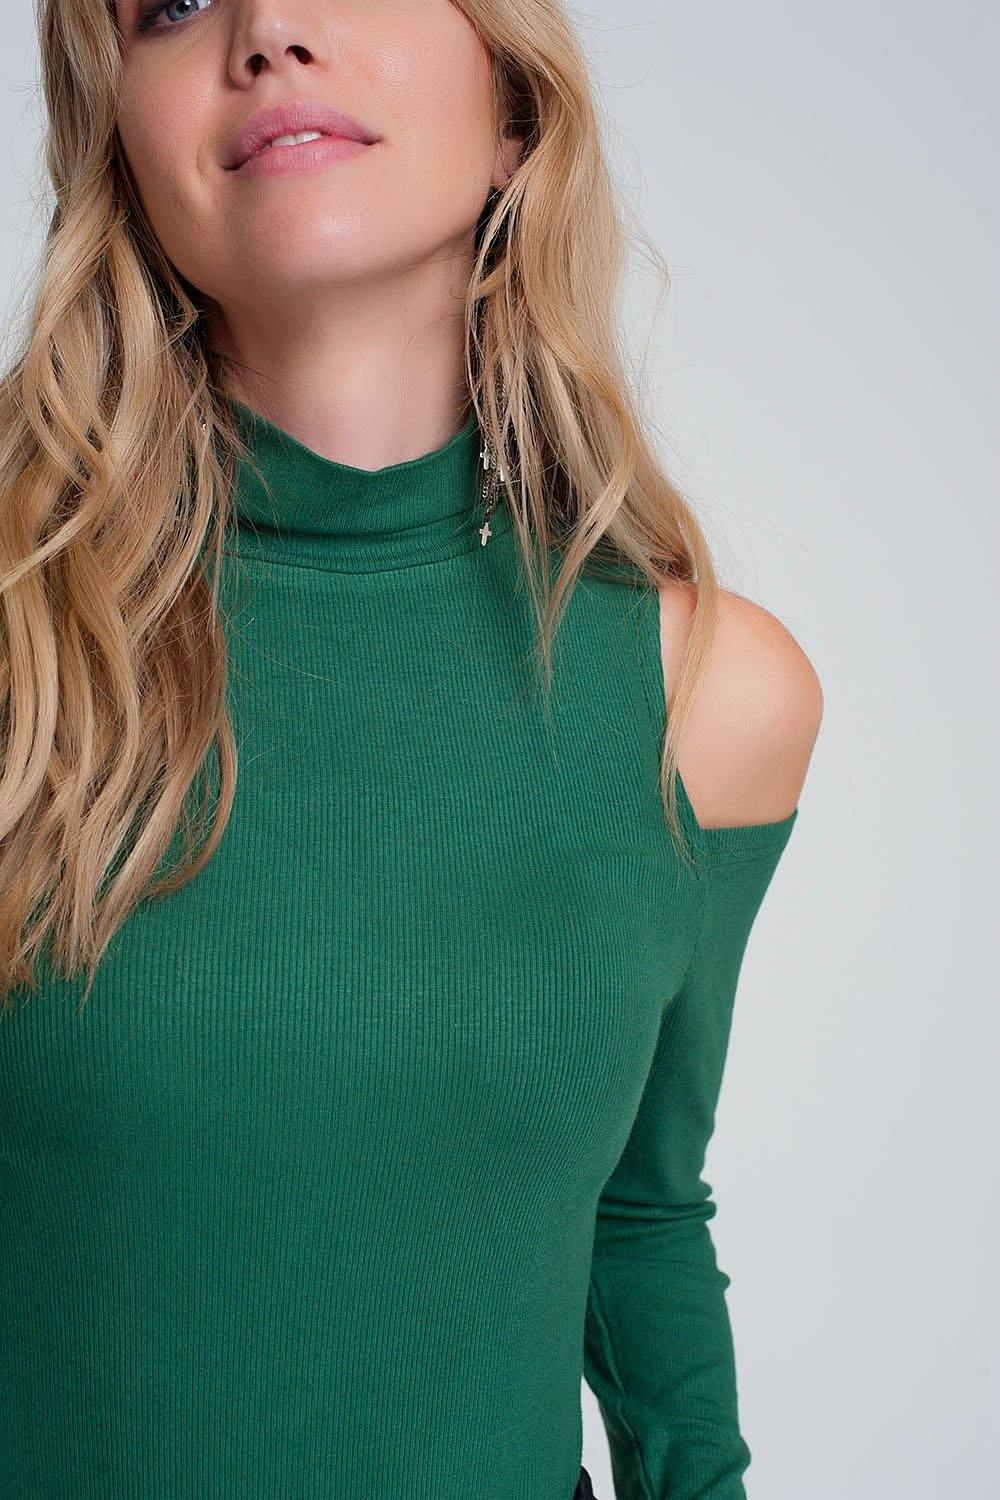 Q2 Green sweater with one open shoulder and high neck